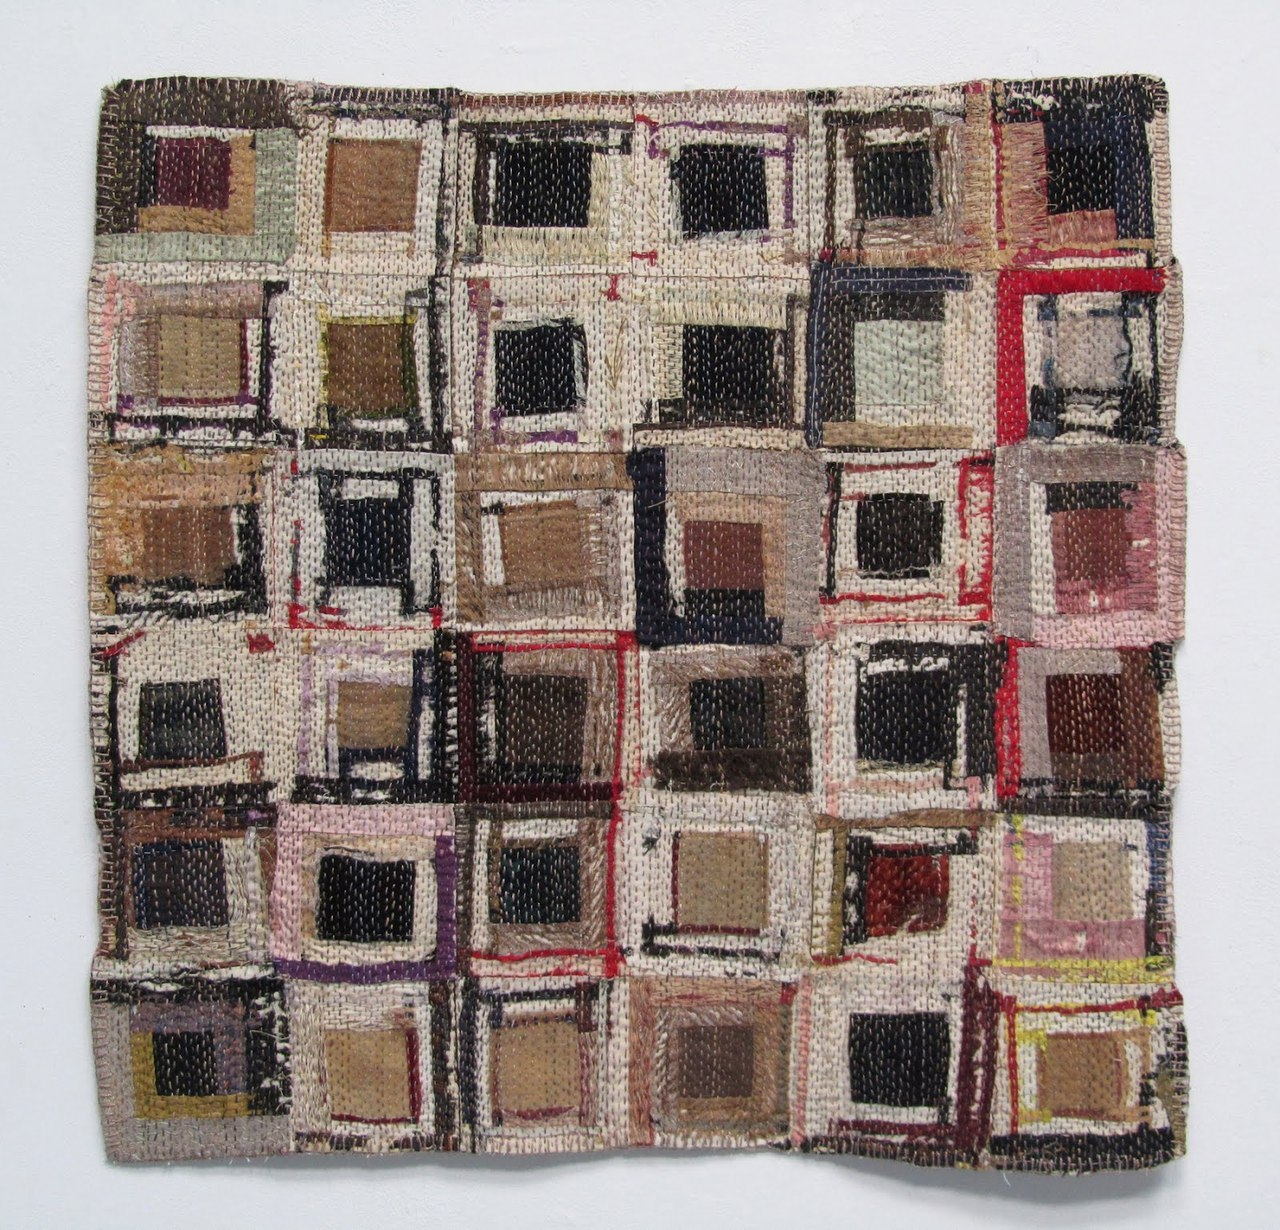 createcreatively:  Held Together by a Thread by Susan Lenz art quilt. Antique quilt fragments, recycled felt batting, vintage tablecloth backing, hand stitching.